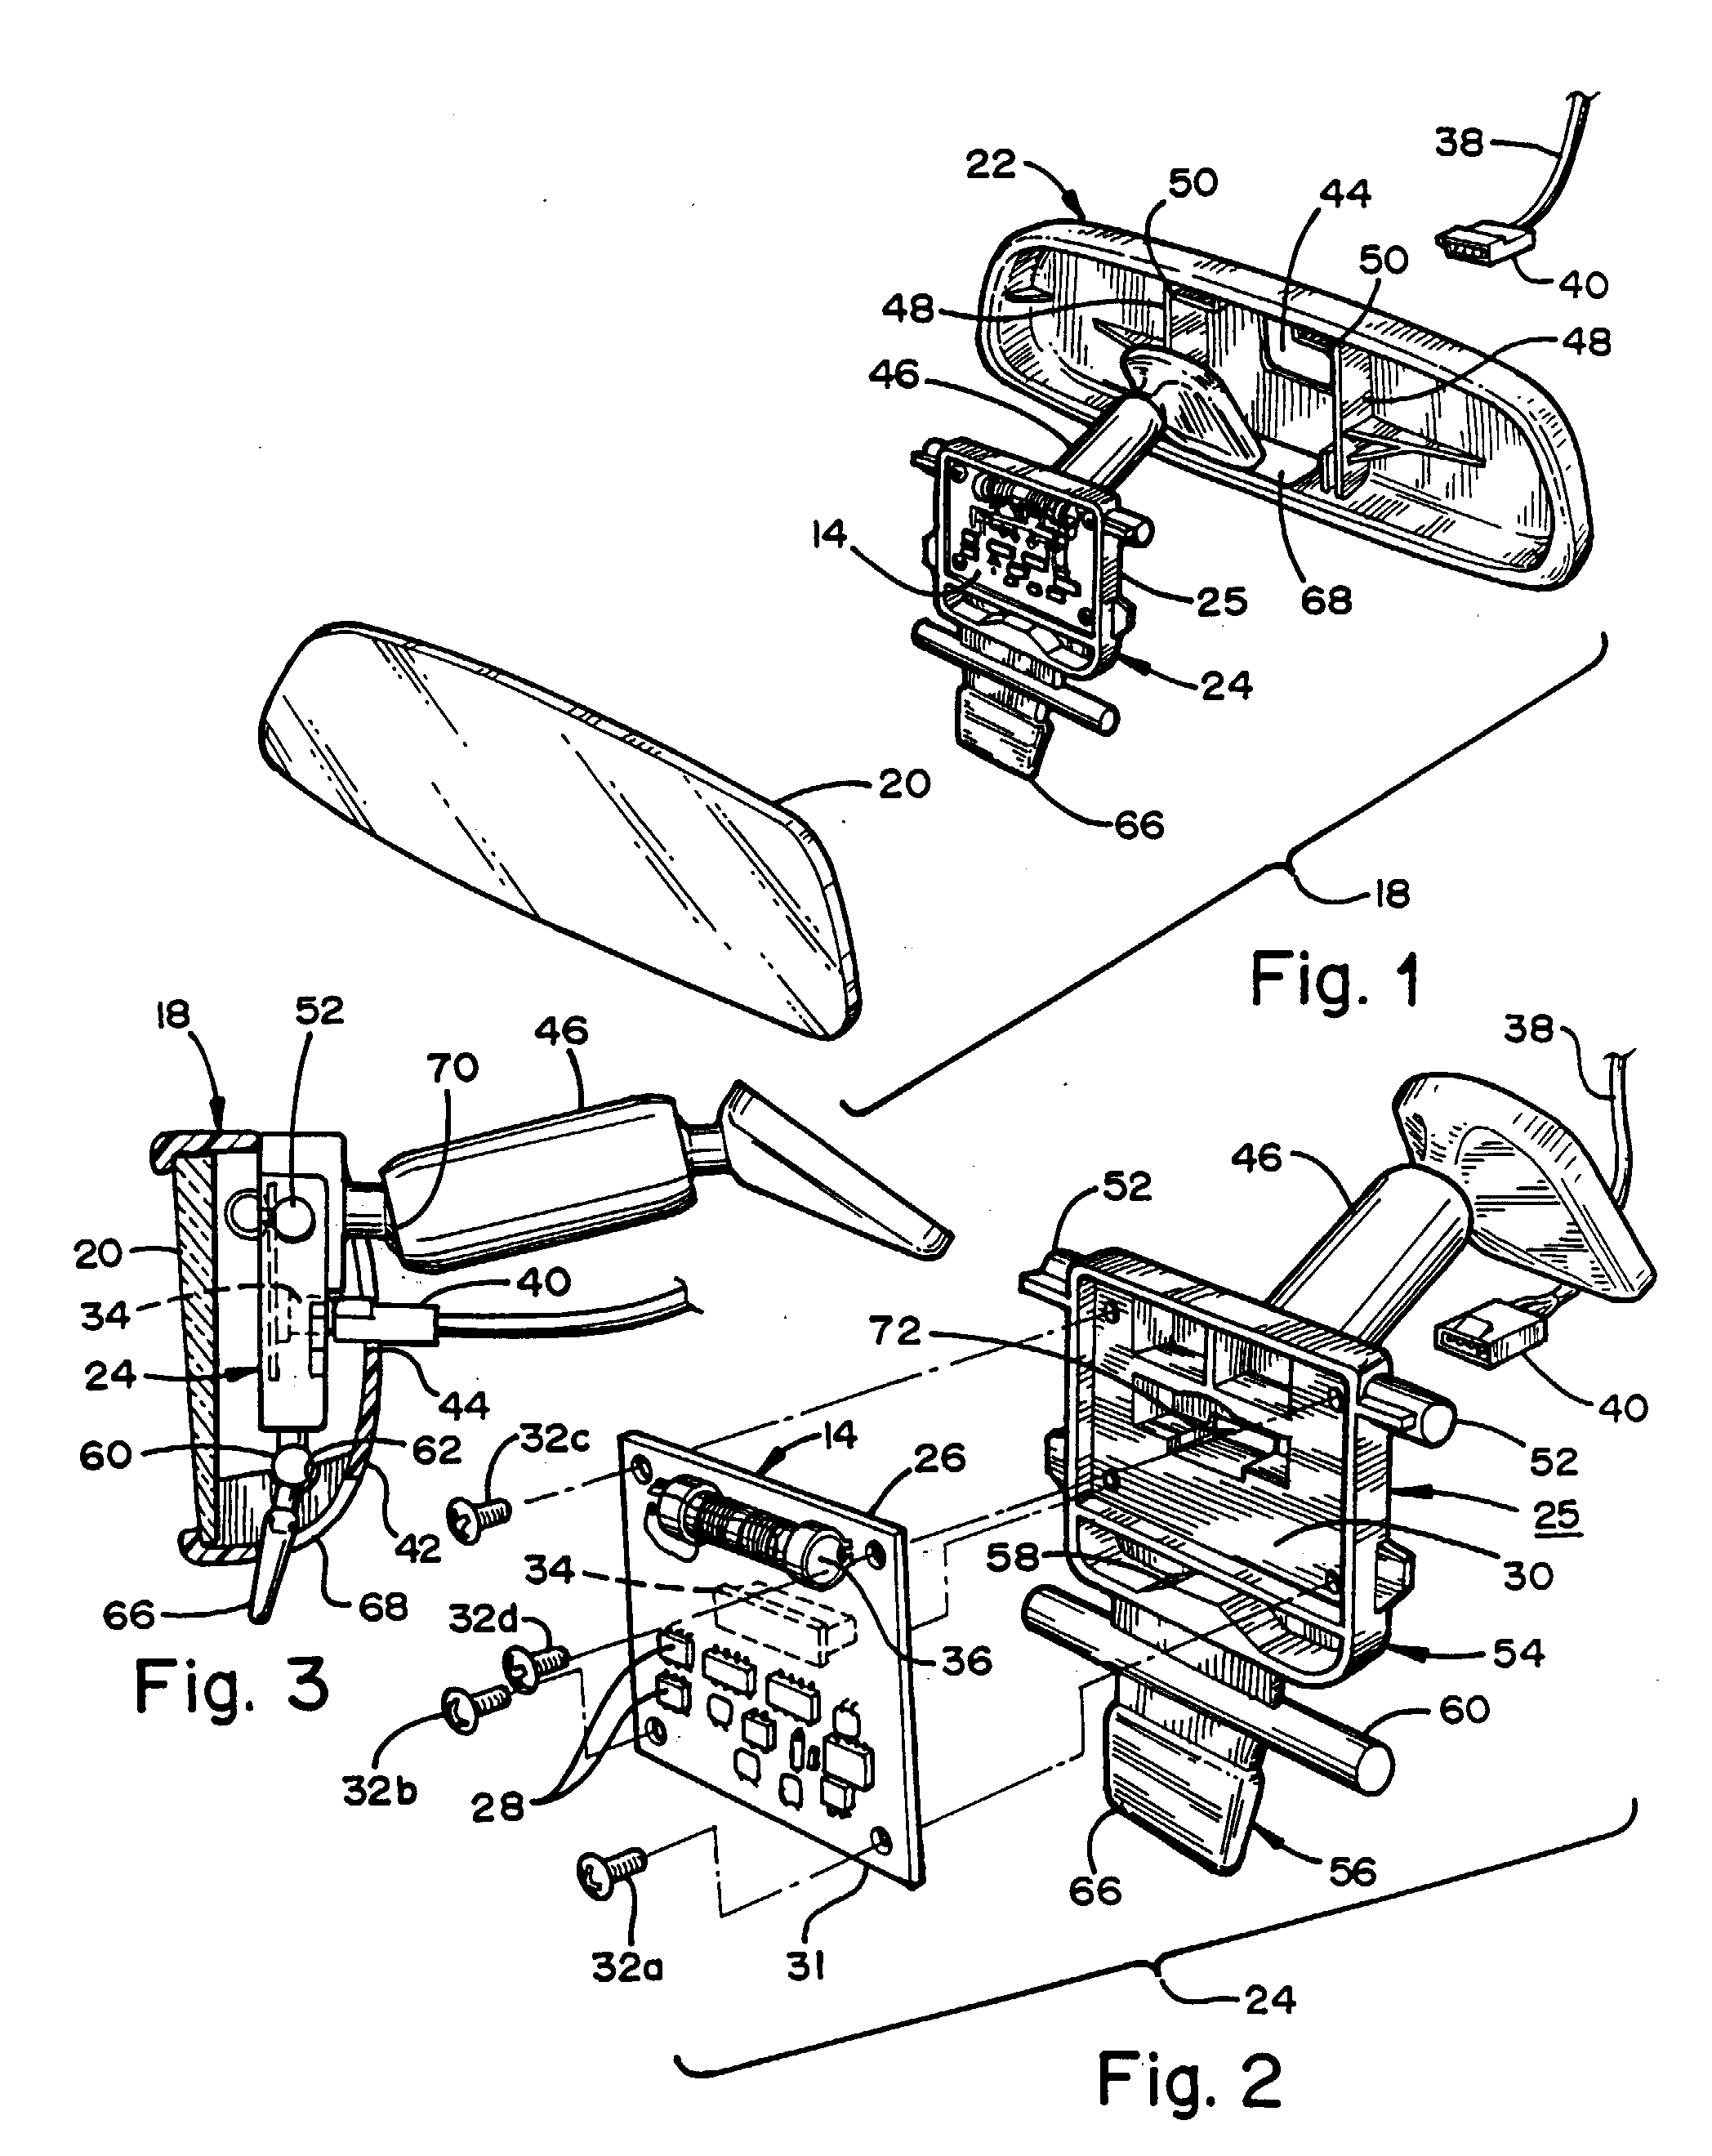 patent ep0860325a2 - interior vehicle mirror assembly having communication module